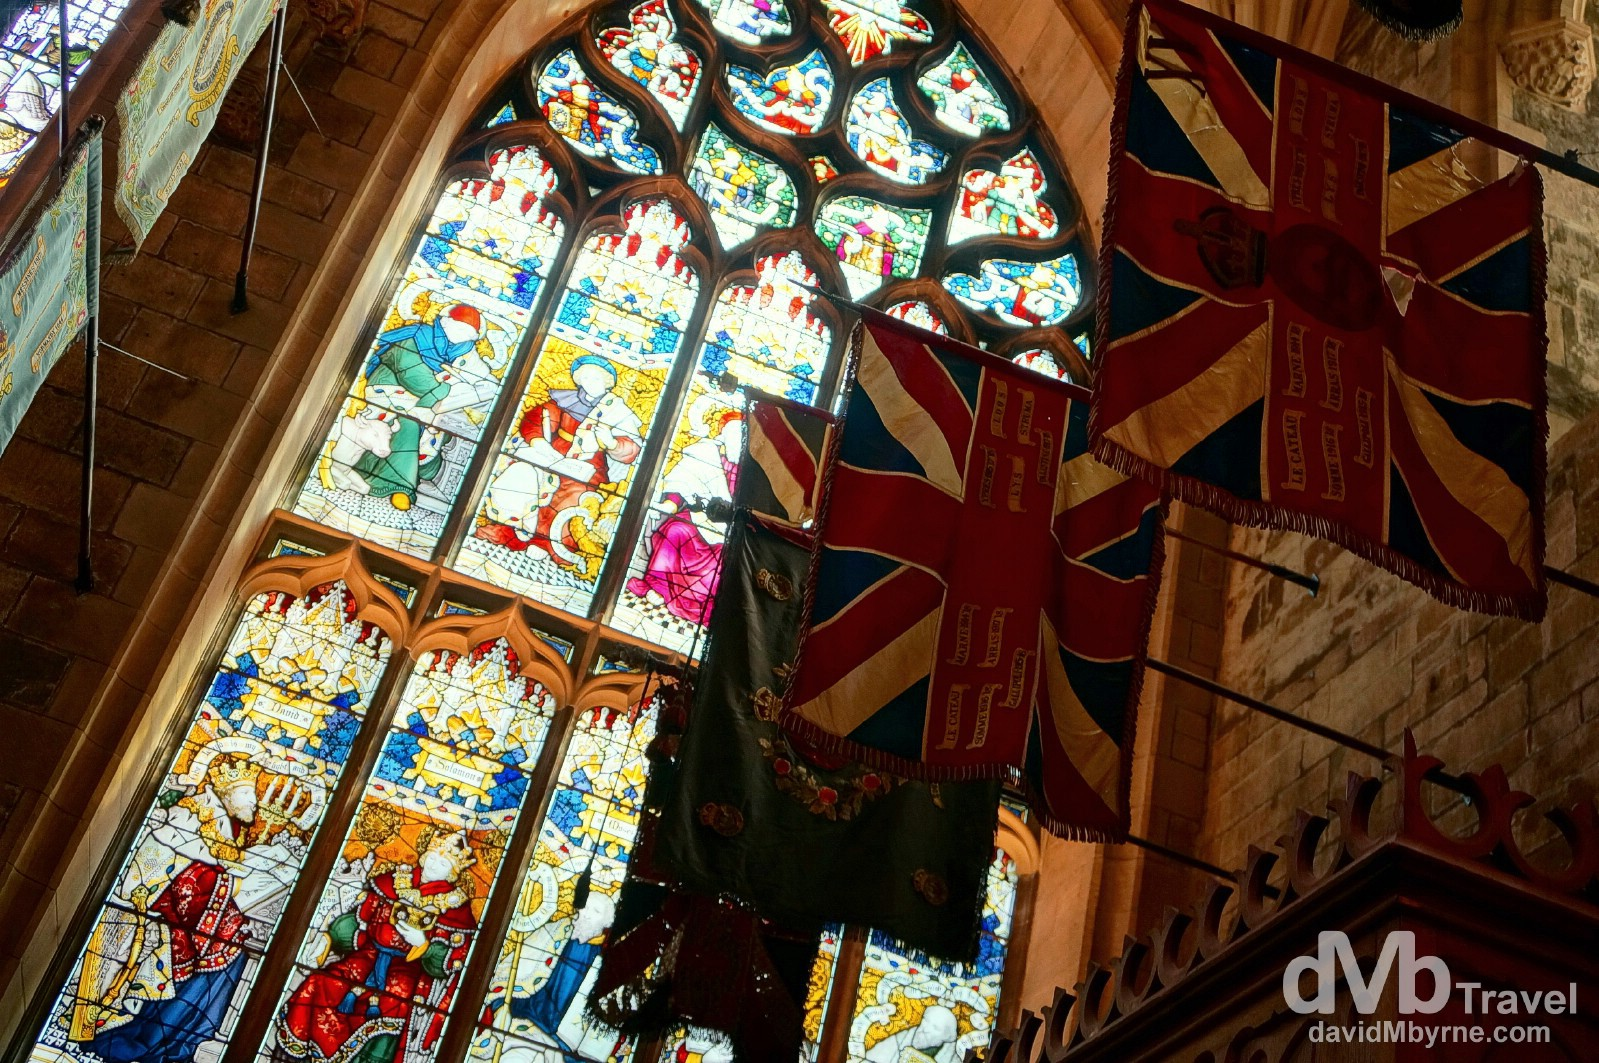 A section of the interior of St. Giles Cathedral in Edinburgh, Scotland. September 12, 2014.